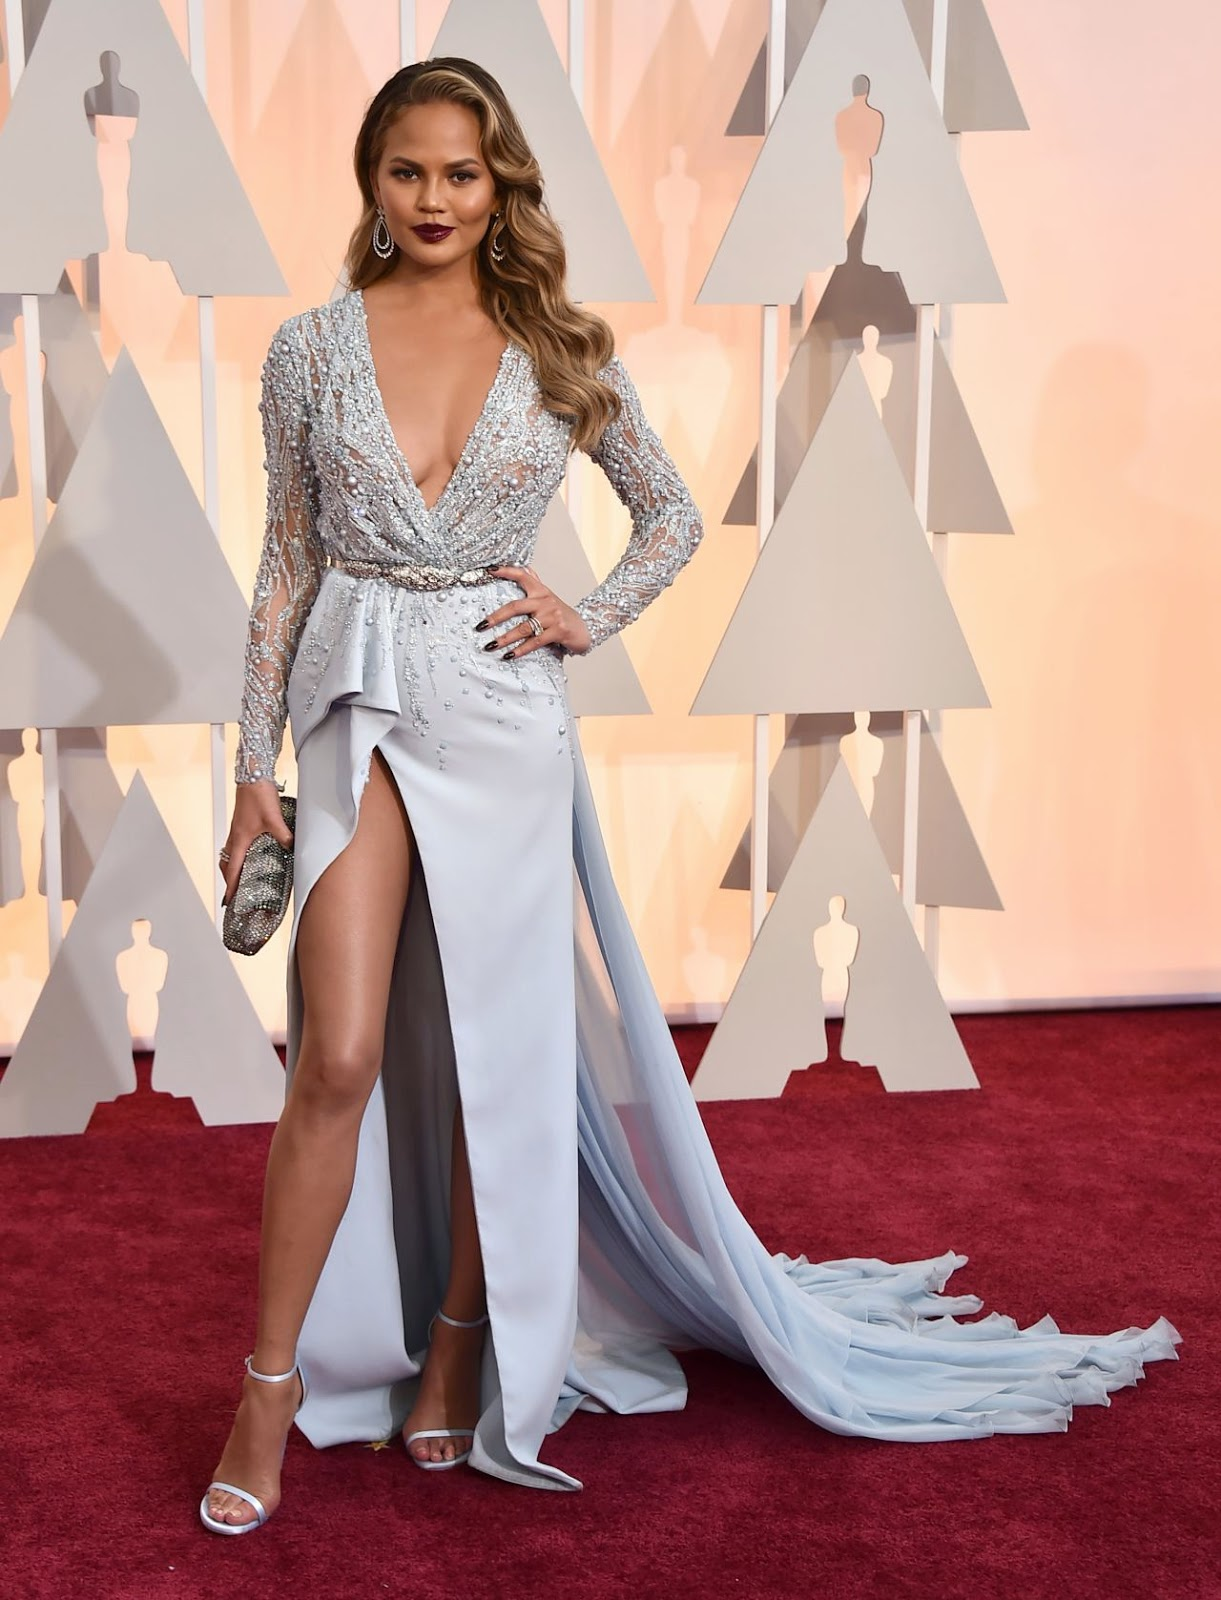 Chrissy Teigen flaunts curves in a plunging gown at the 2015 Oscars in Hollywood